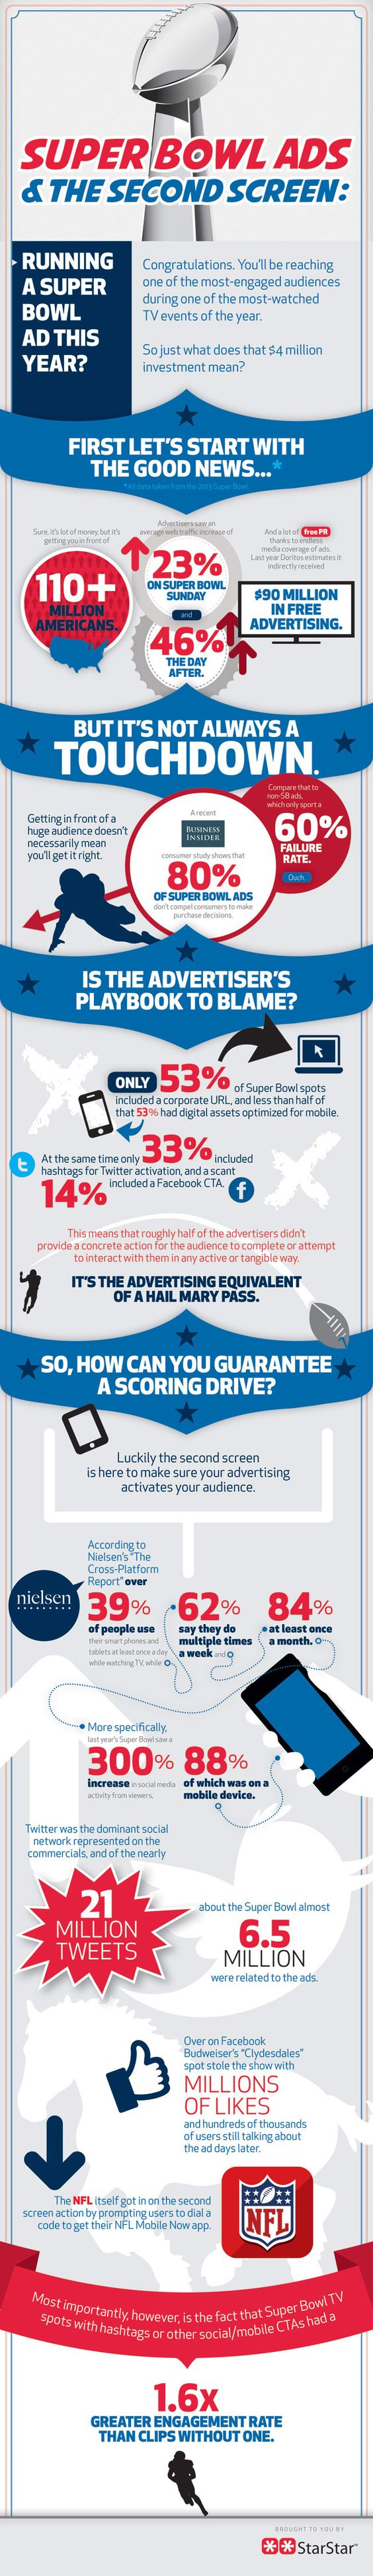 Will Super Bowl Advertisers Put Hashtags and Facebook URLs in Their Spots?